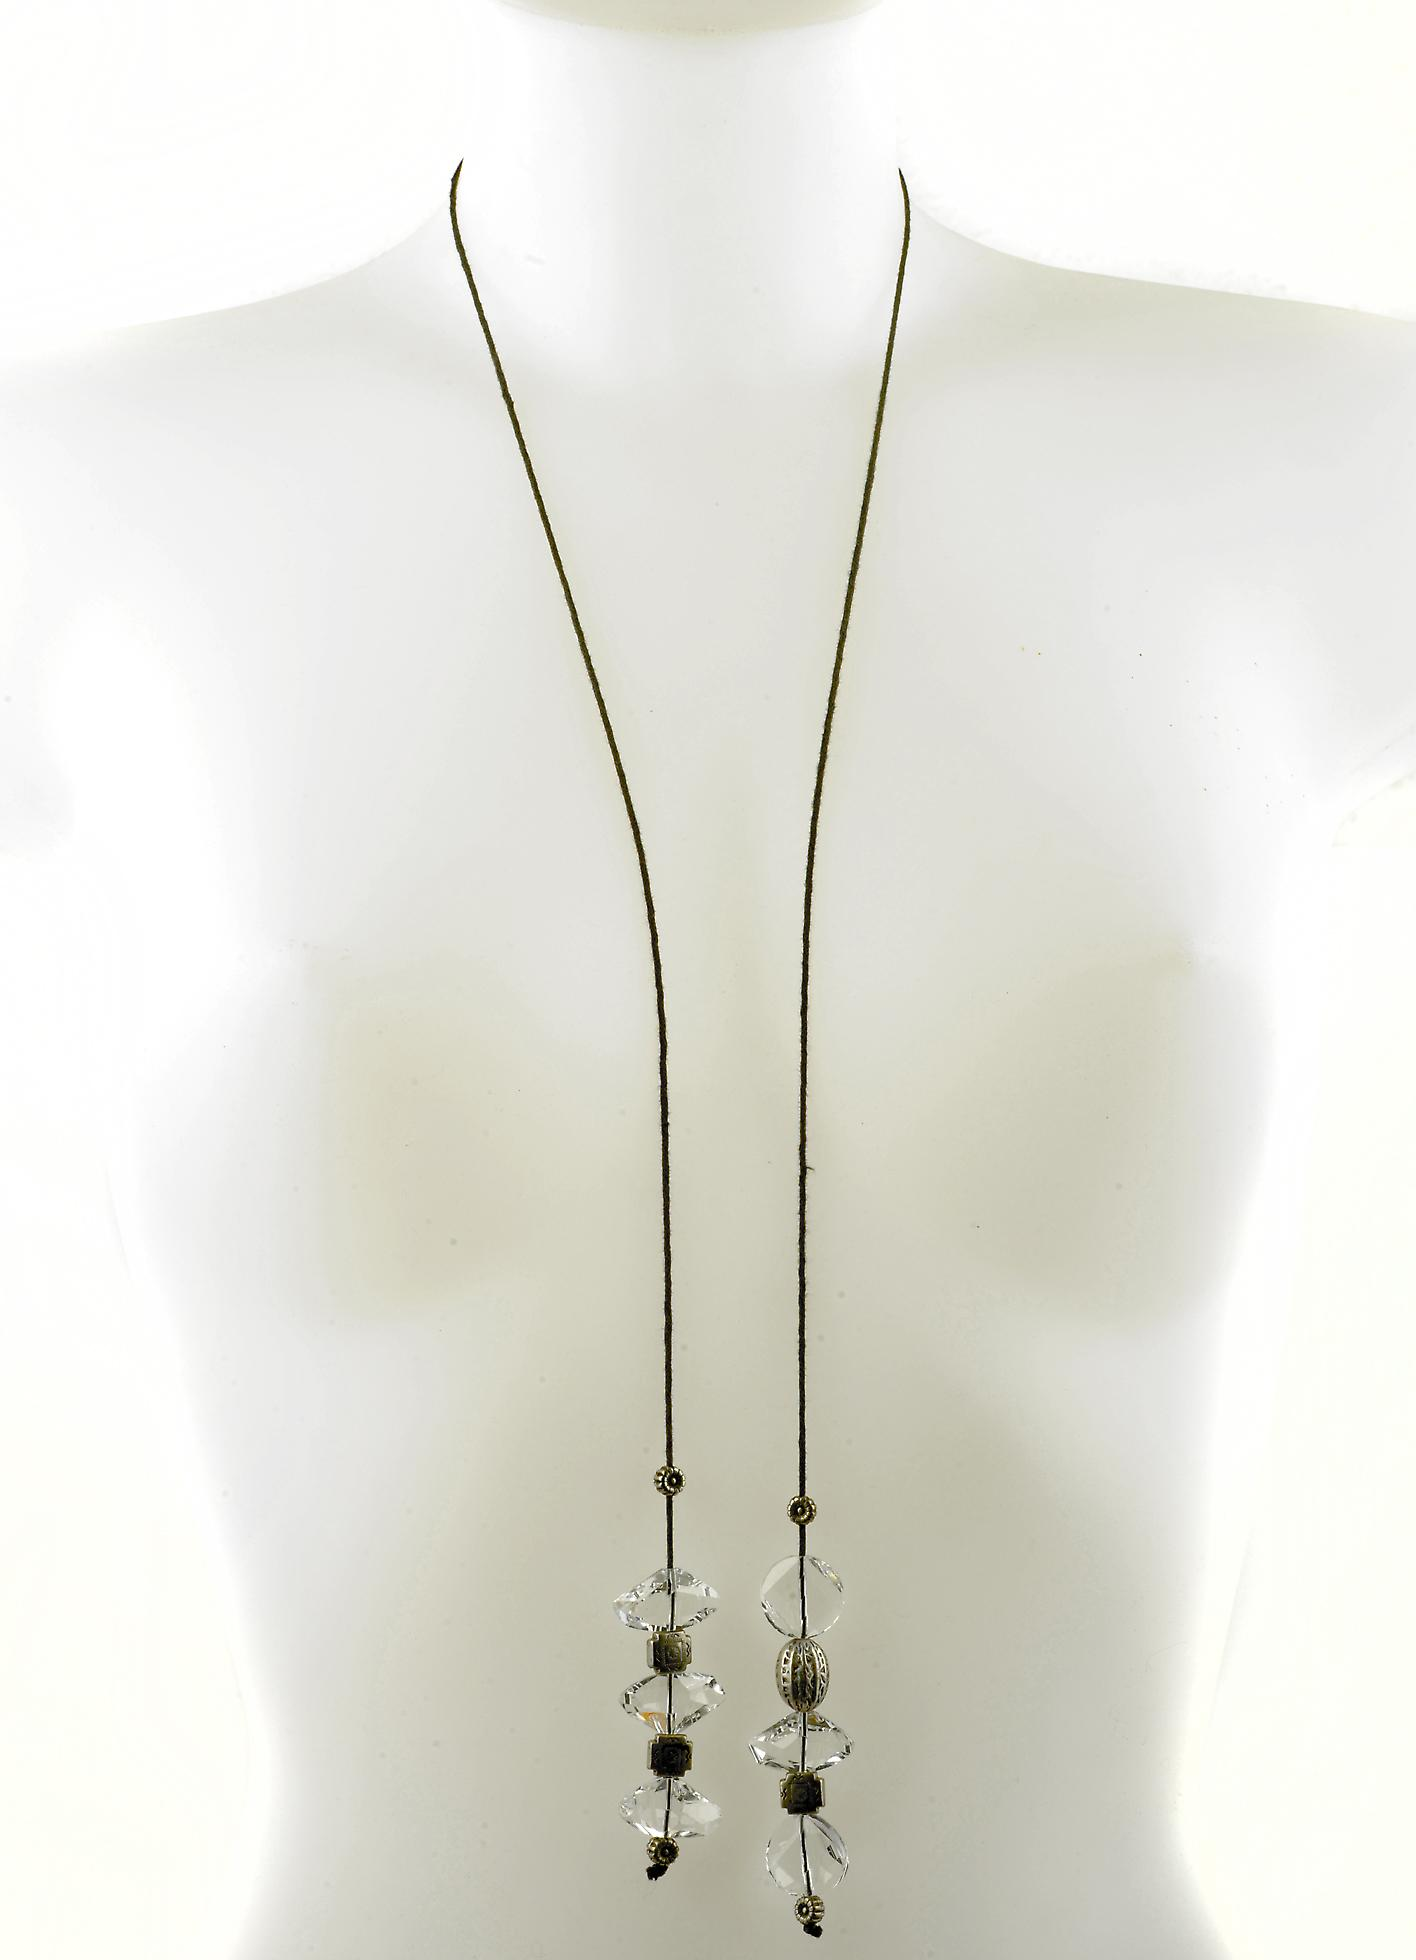 Waooh - Fashion Jewellery - WJ0290 - Necklace with Swarovski Pierre White - Silver Pendant Old